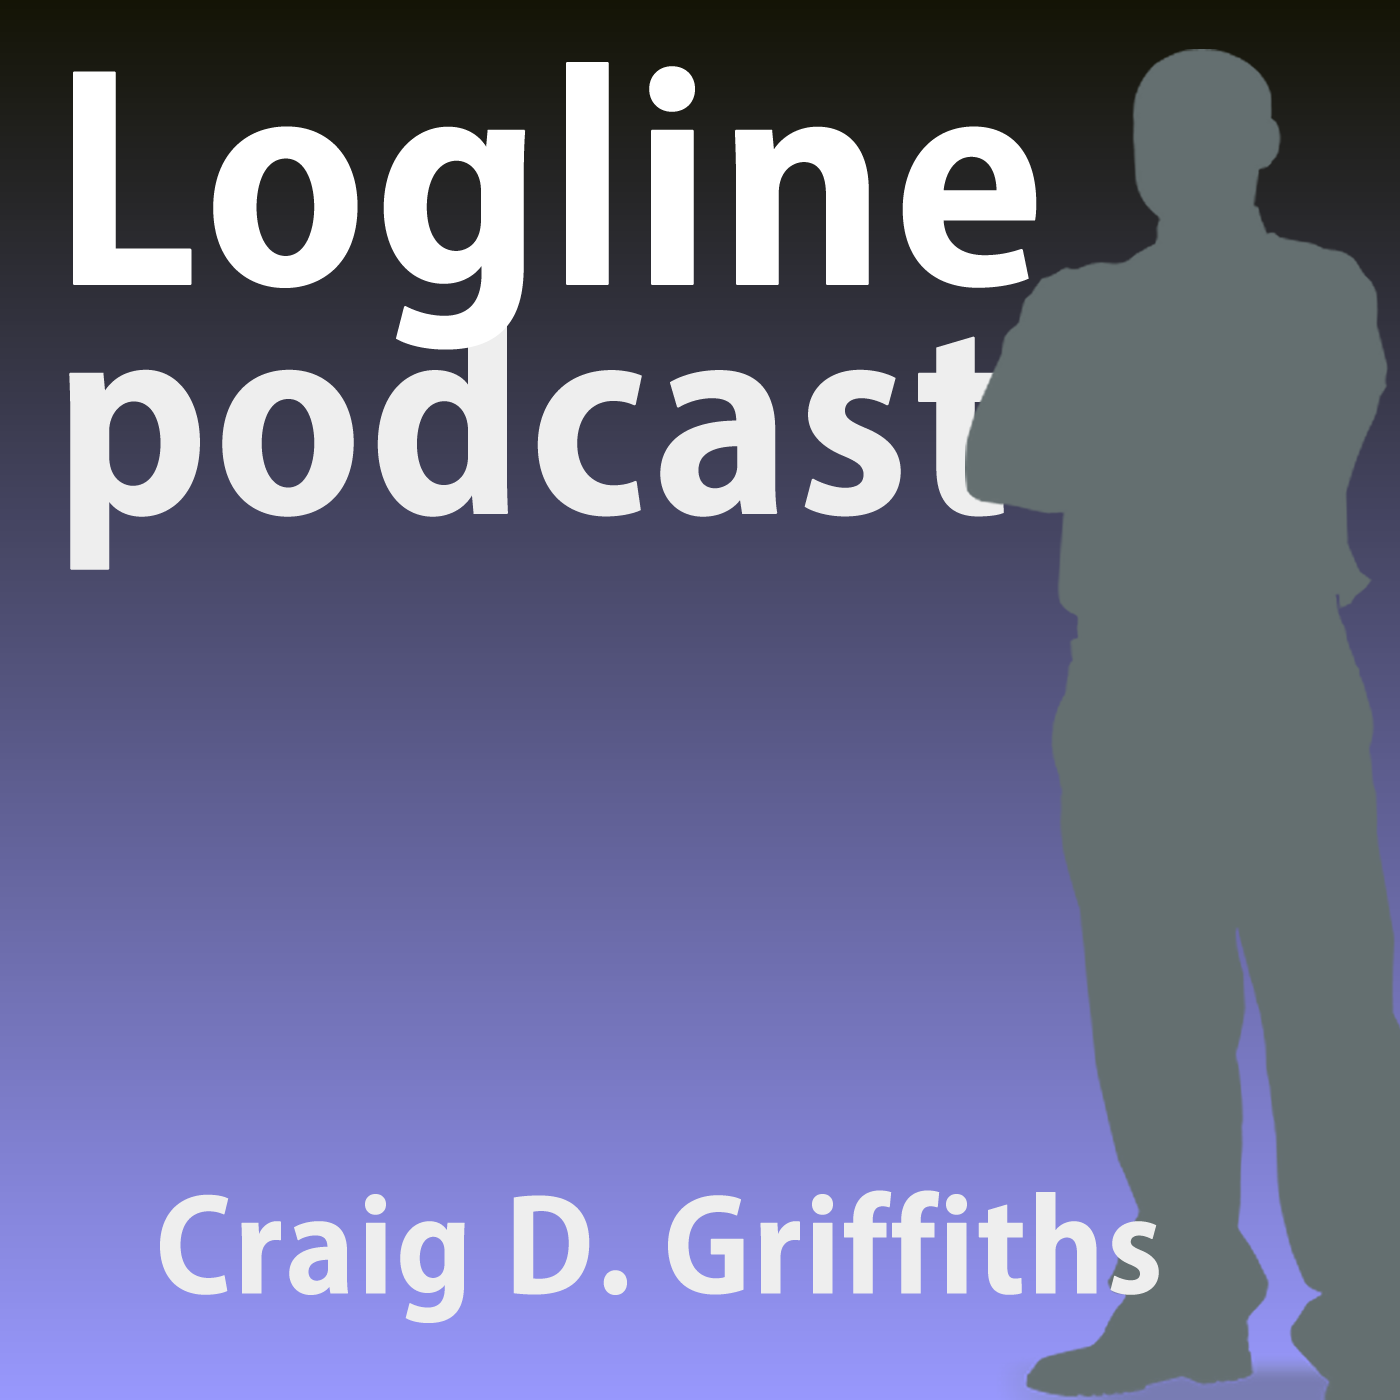 Logline podcast Craig Griffiths